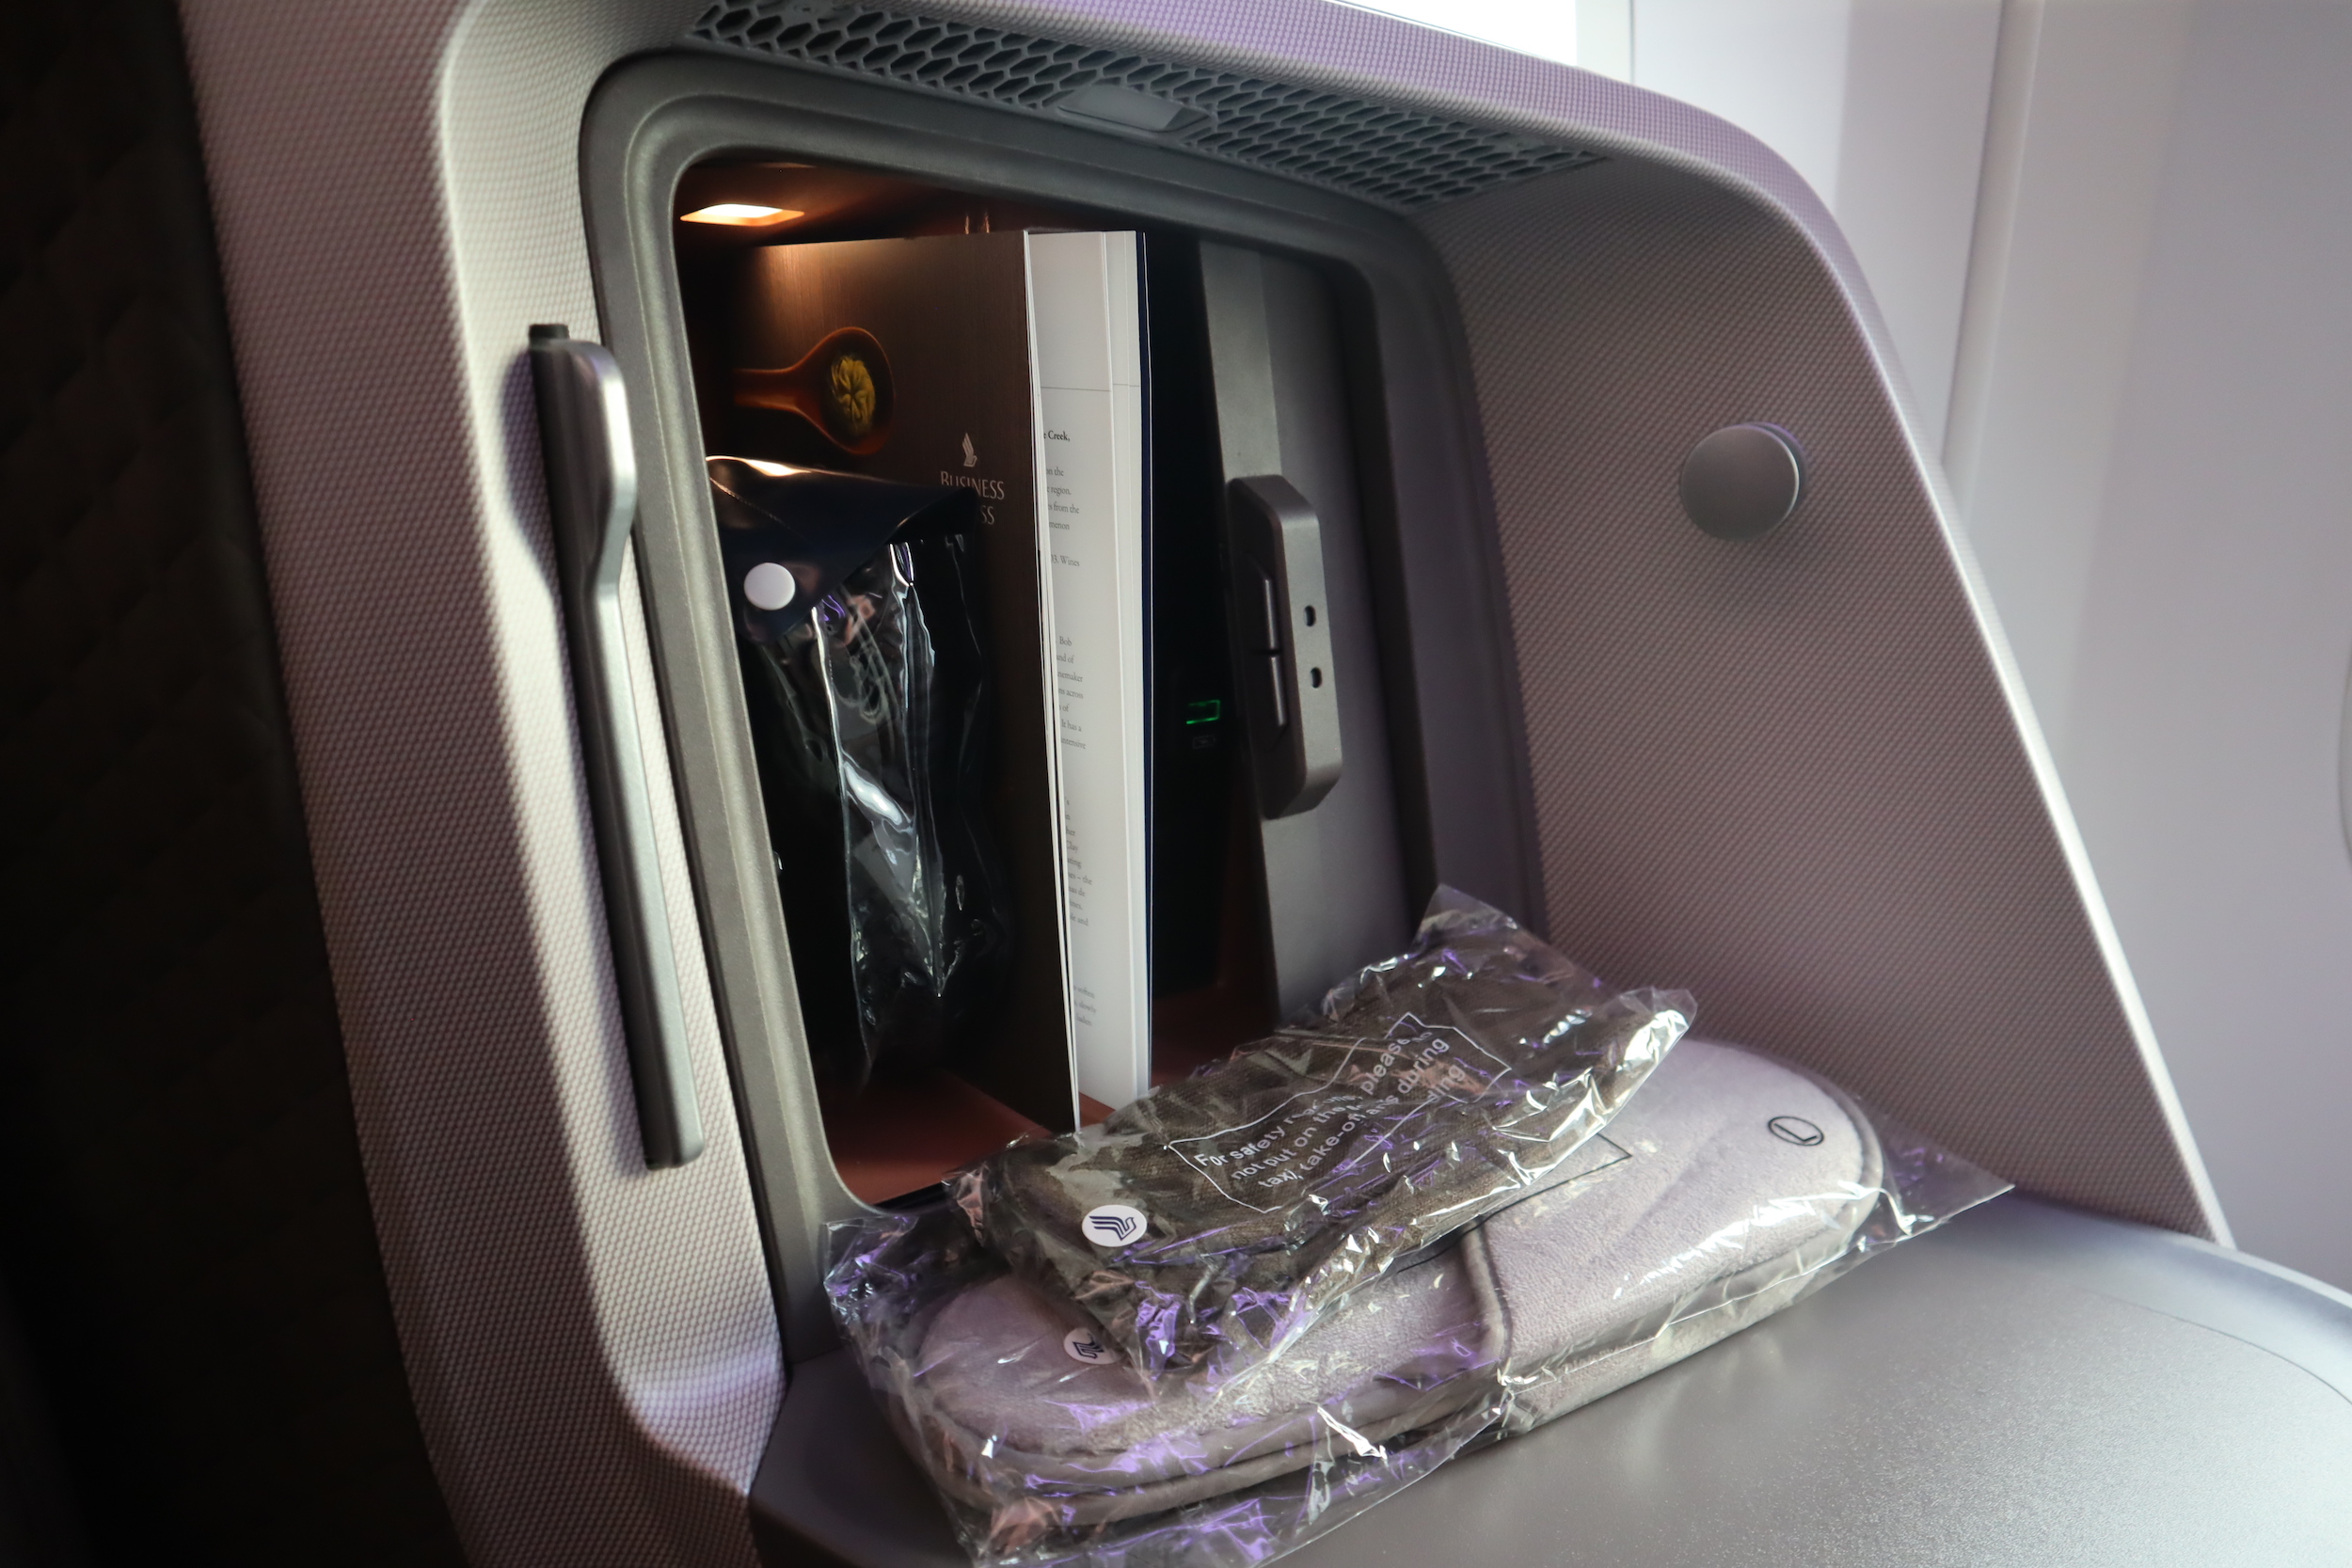 Singapore Airlines 787-10 business class – Pre-departure amenities